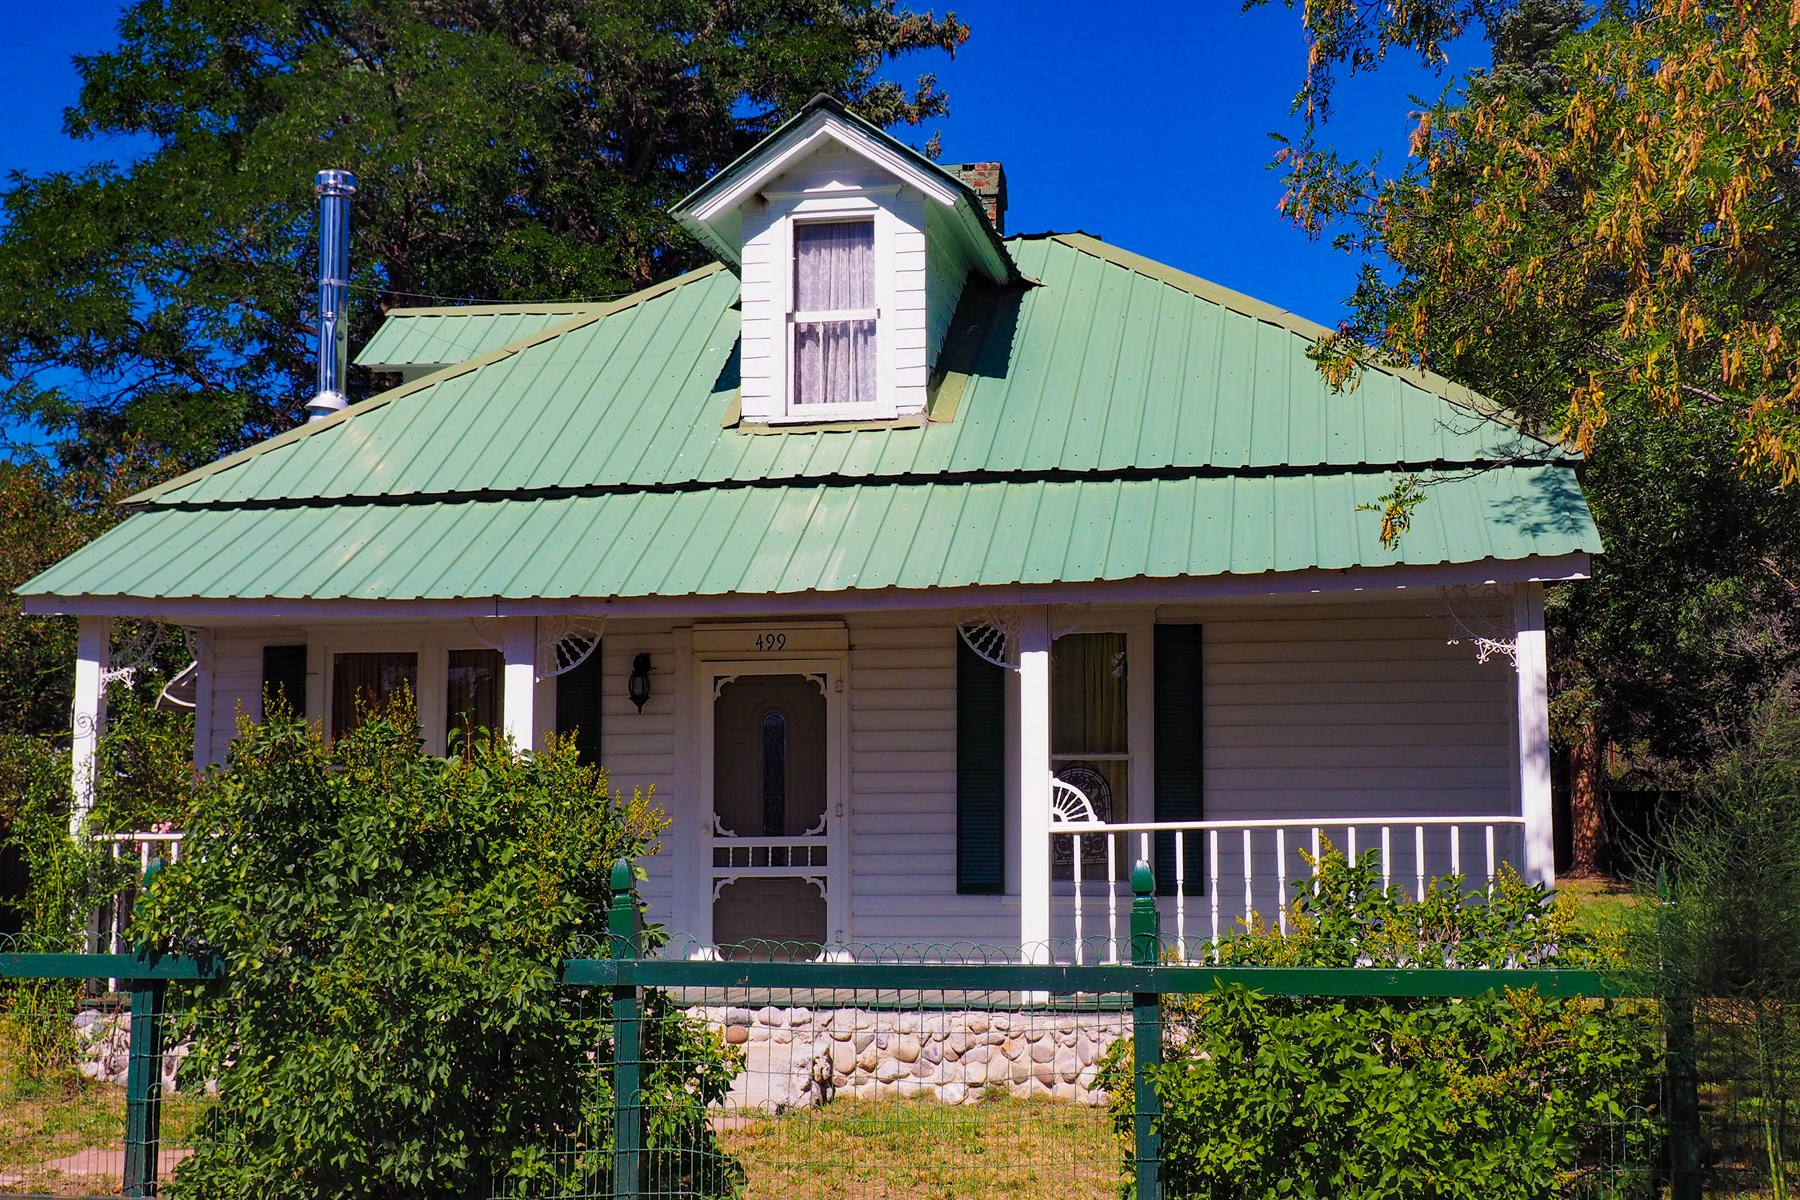 Victorian Homes for Sale in Chama NM Residential Property